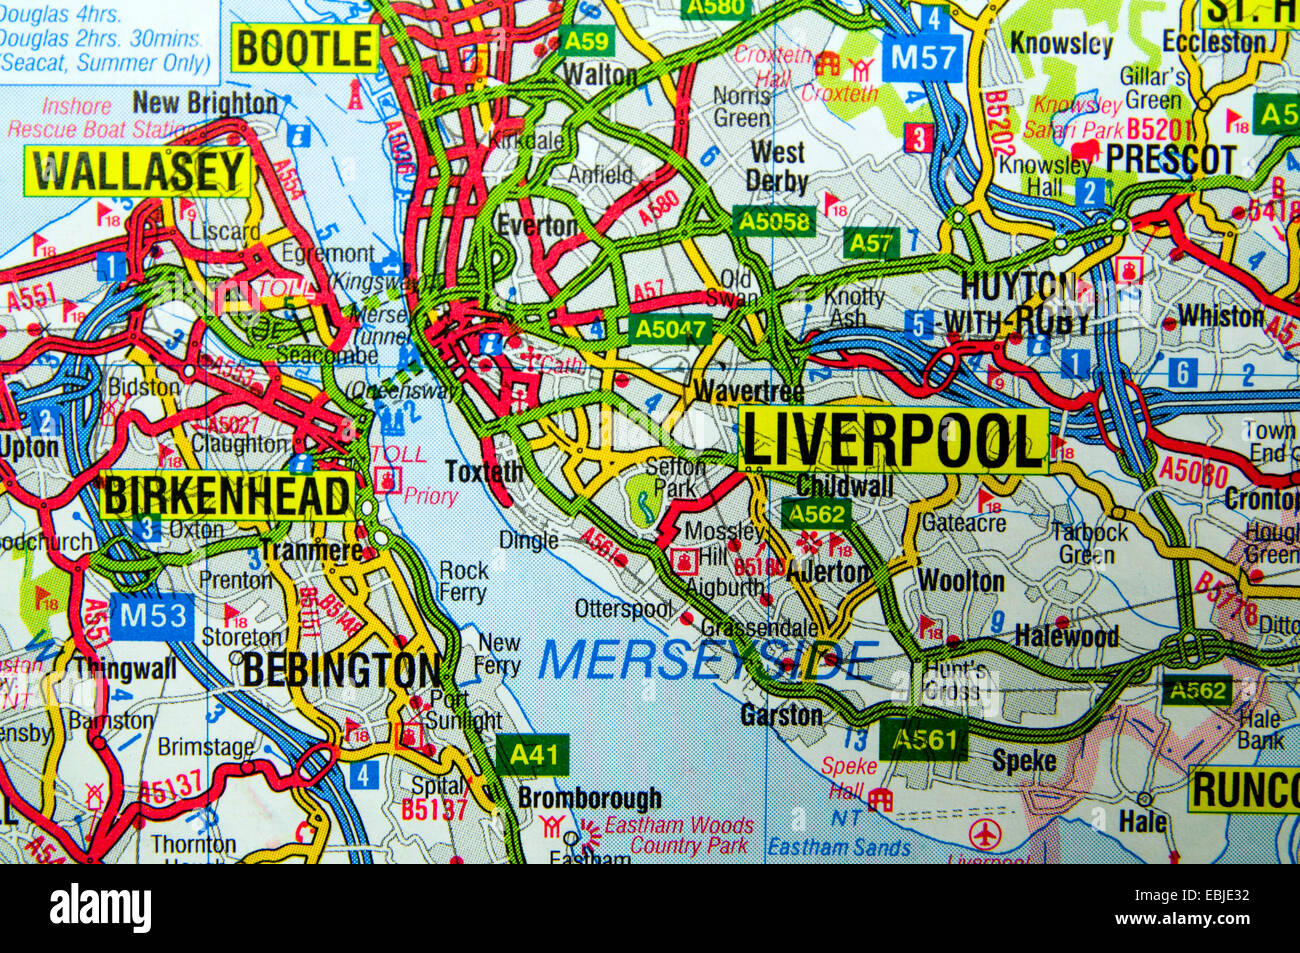 Road Map of Liverpool, England Stock Photo: 76008886 - Alamy